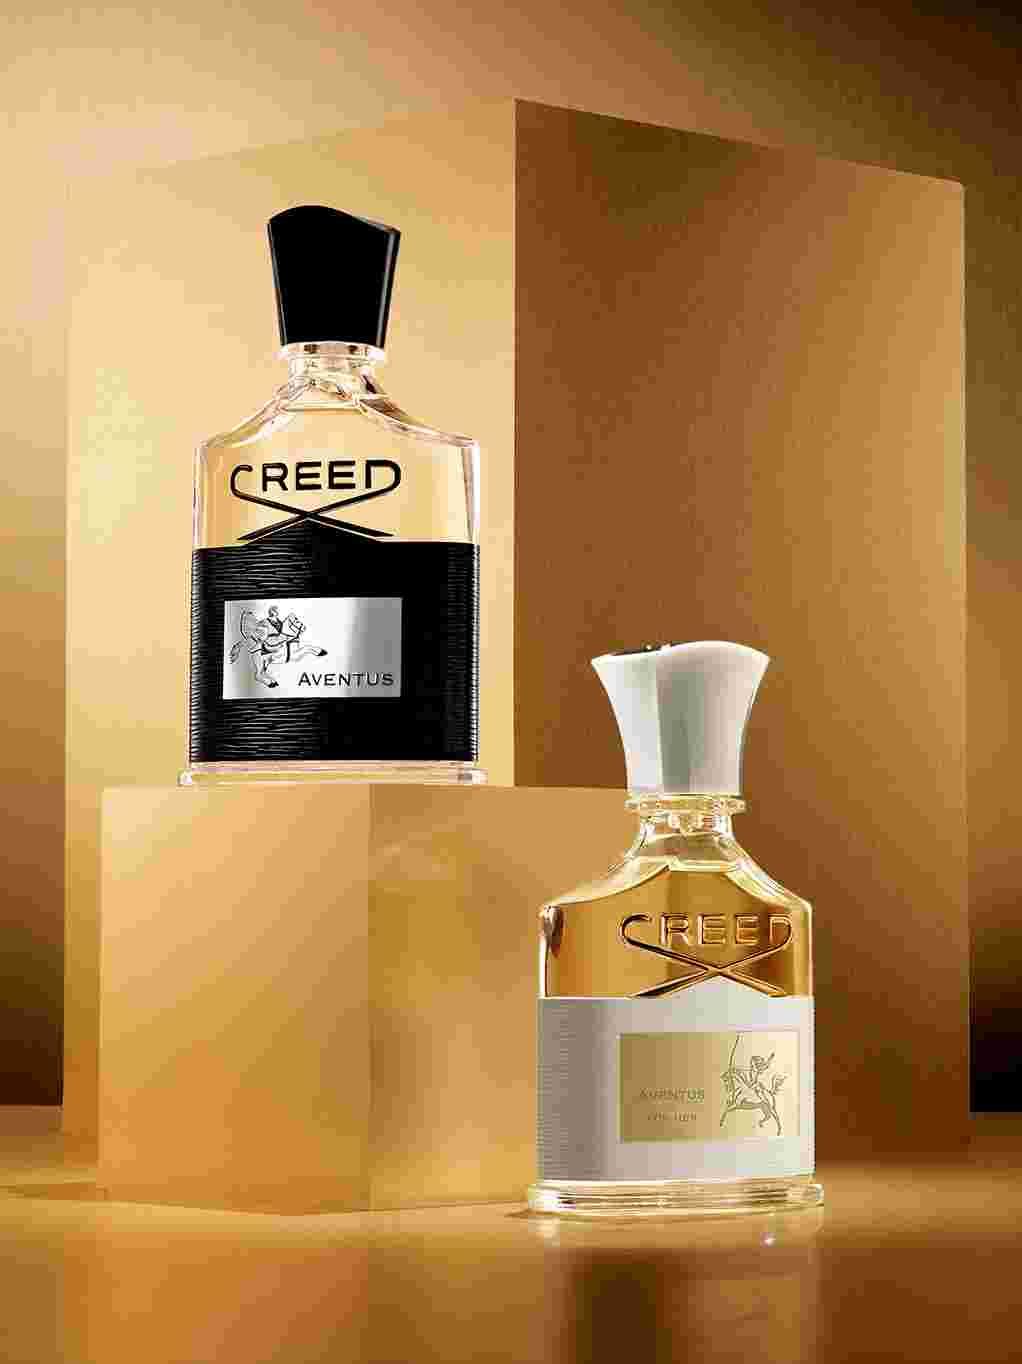 Creed fragrance for him and her